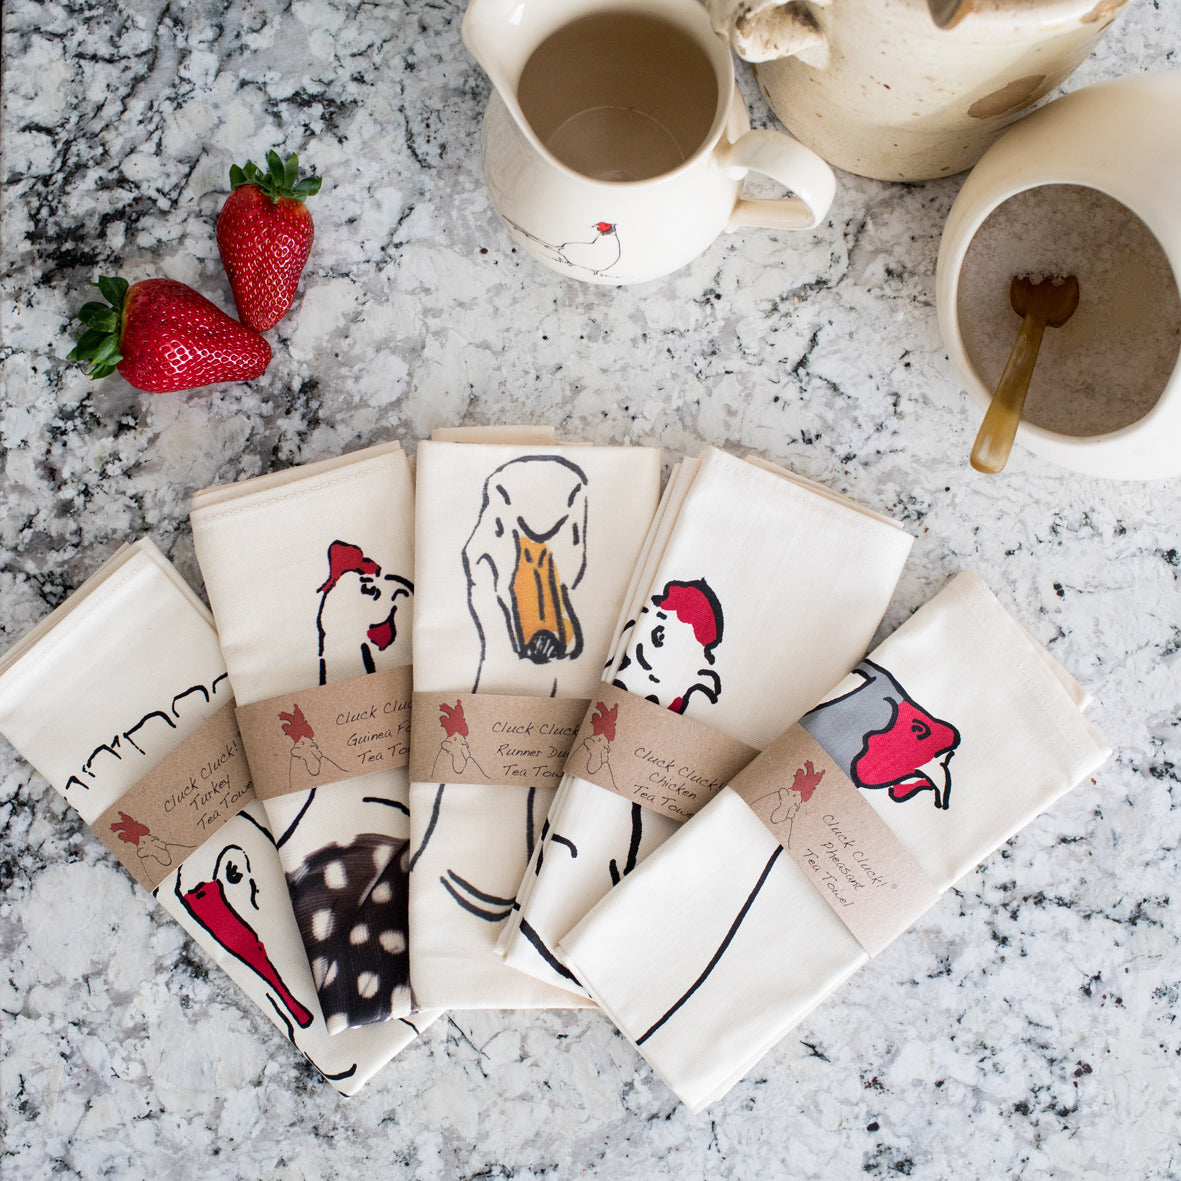 Tea towels from Cluck Cluck